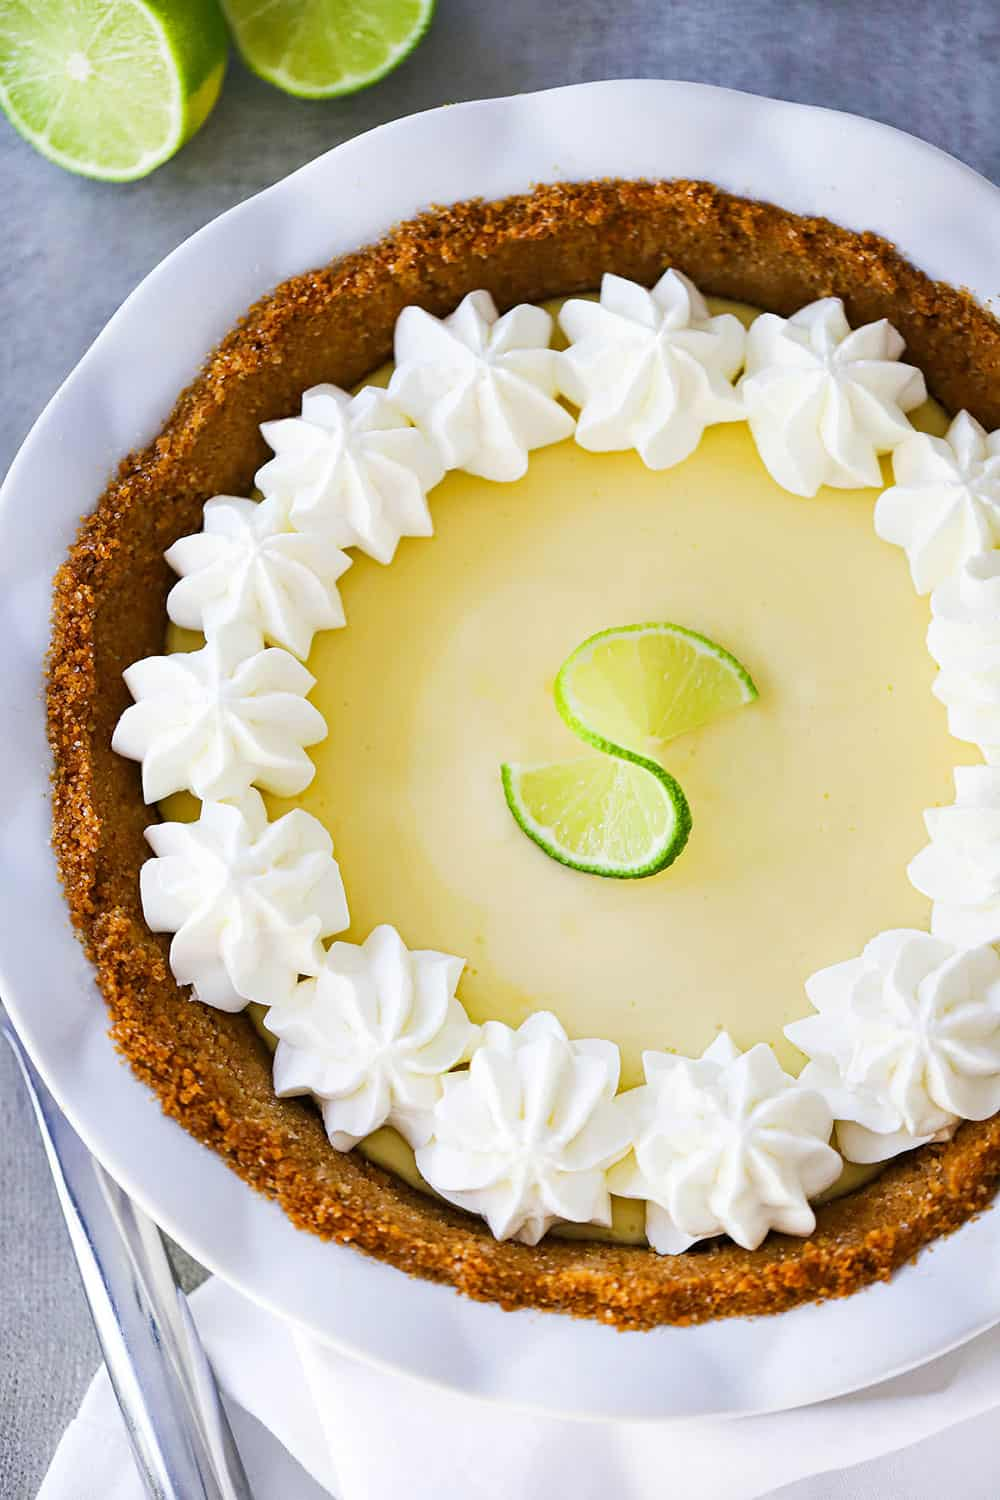 An overhead view of a key lime pie with whipped cream puffs along the edge of the crust.